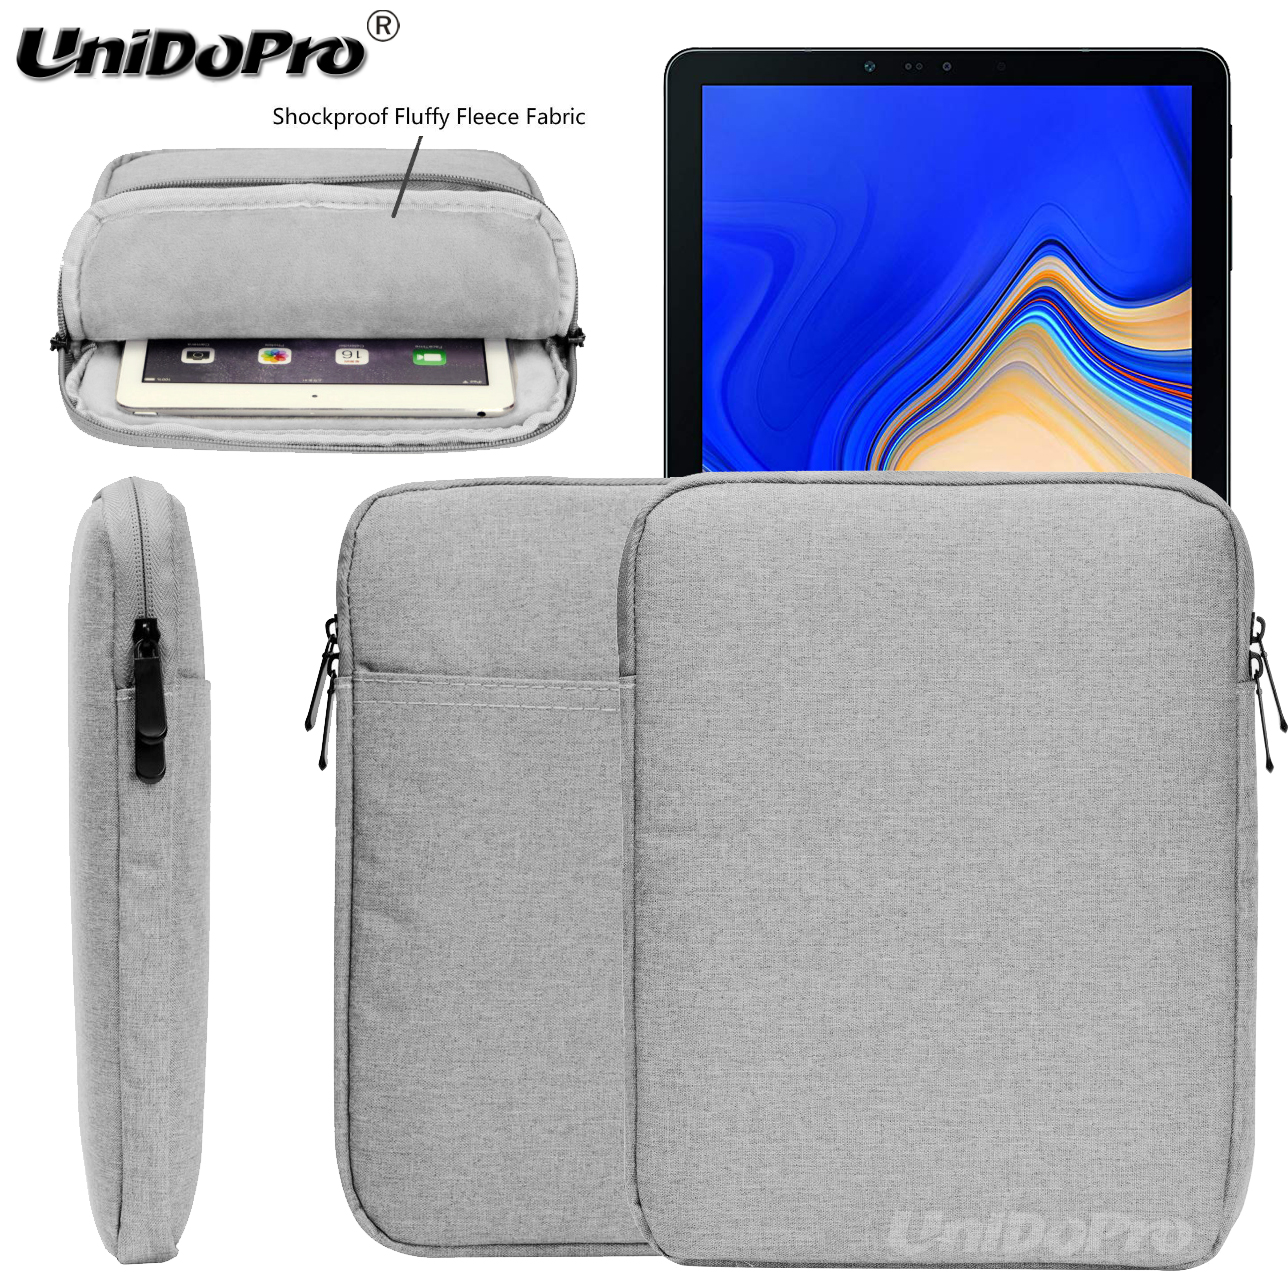 Waterproof Pouch Case For Samsung Galaxy Tab S4 T830 T835 10.5-Inch 2018 New Tablet Protective Travel Sleeve Zipper Bag Cover